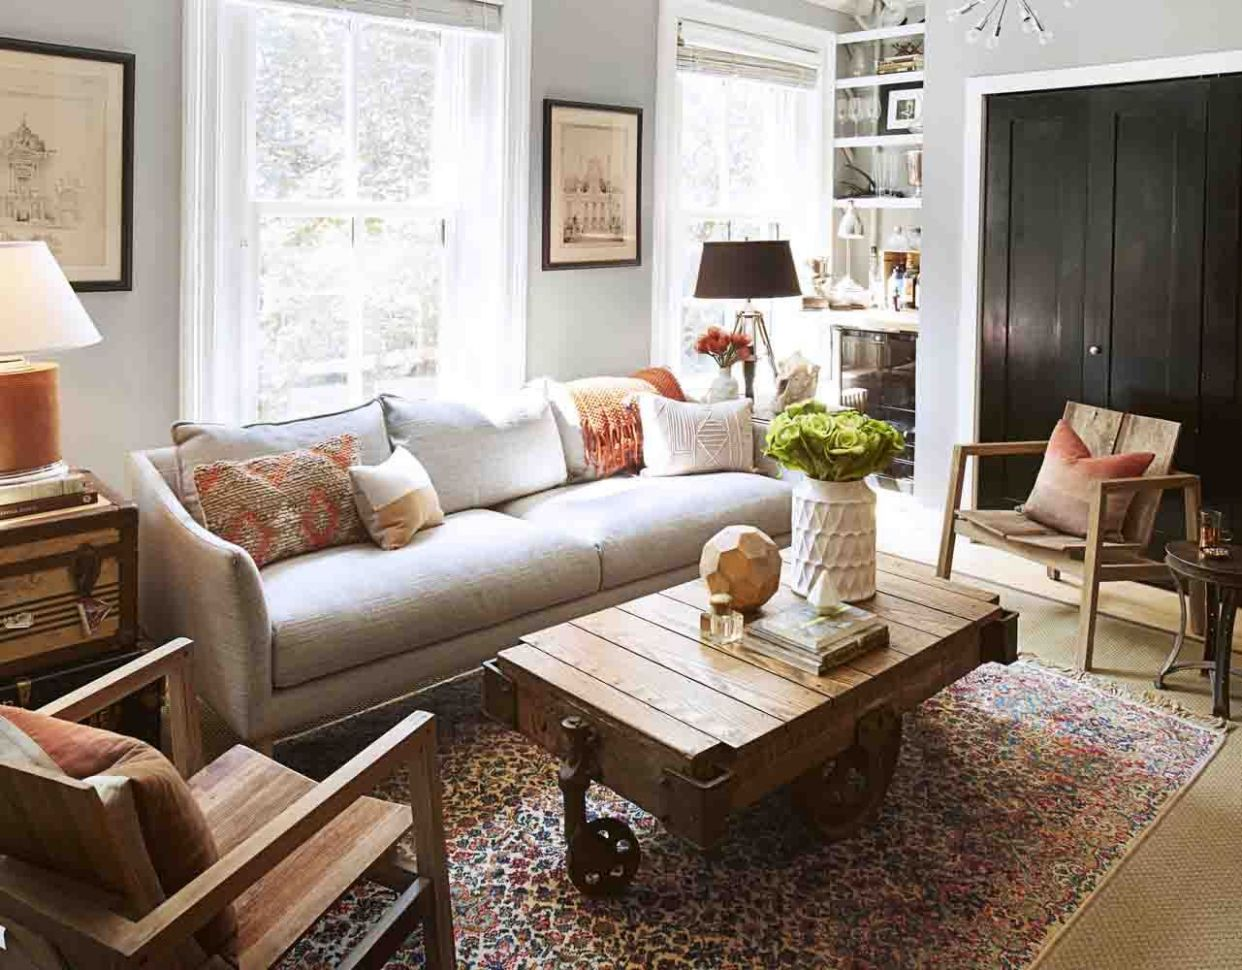 10 Best Living Room Ideas - Stylish Living Room Decorating Designs